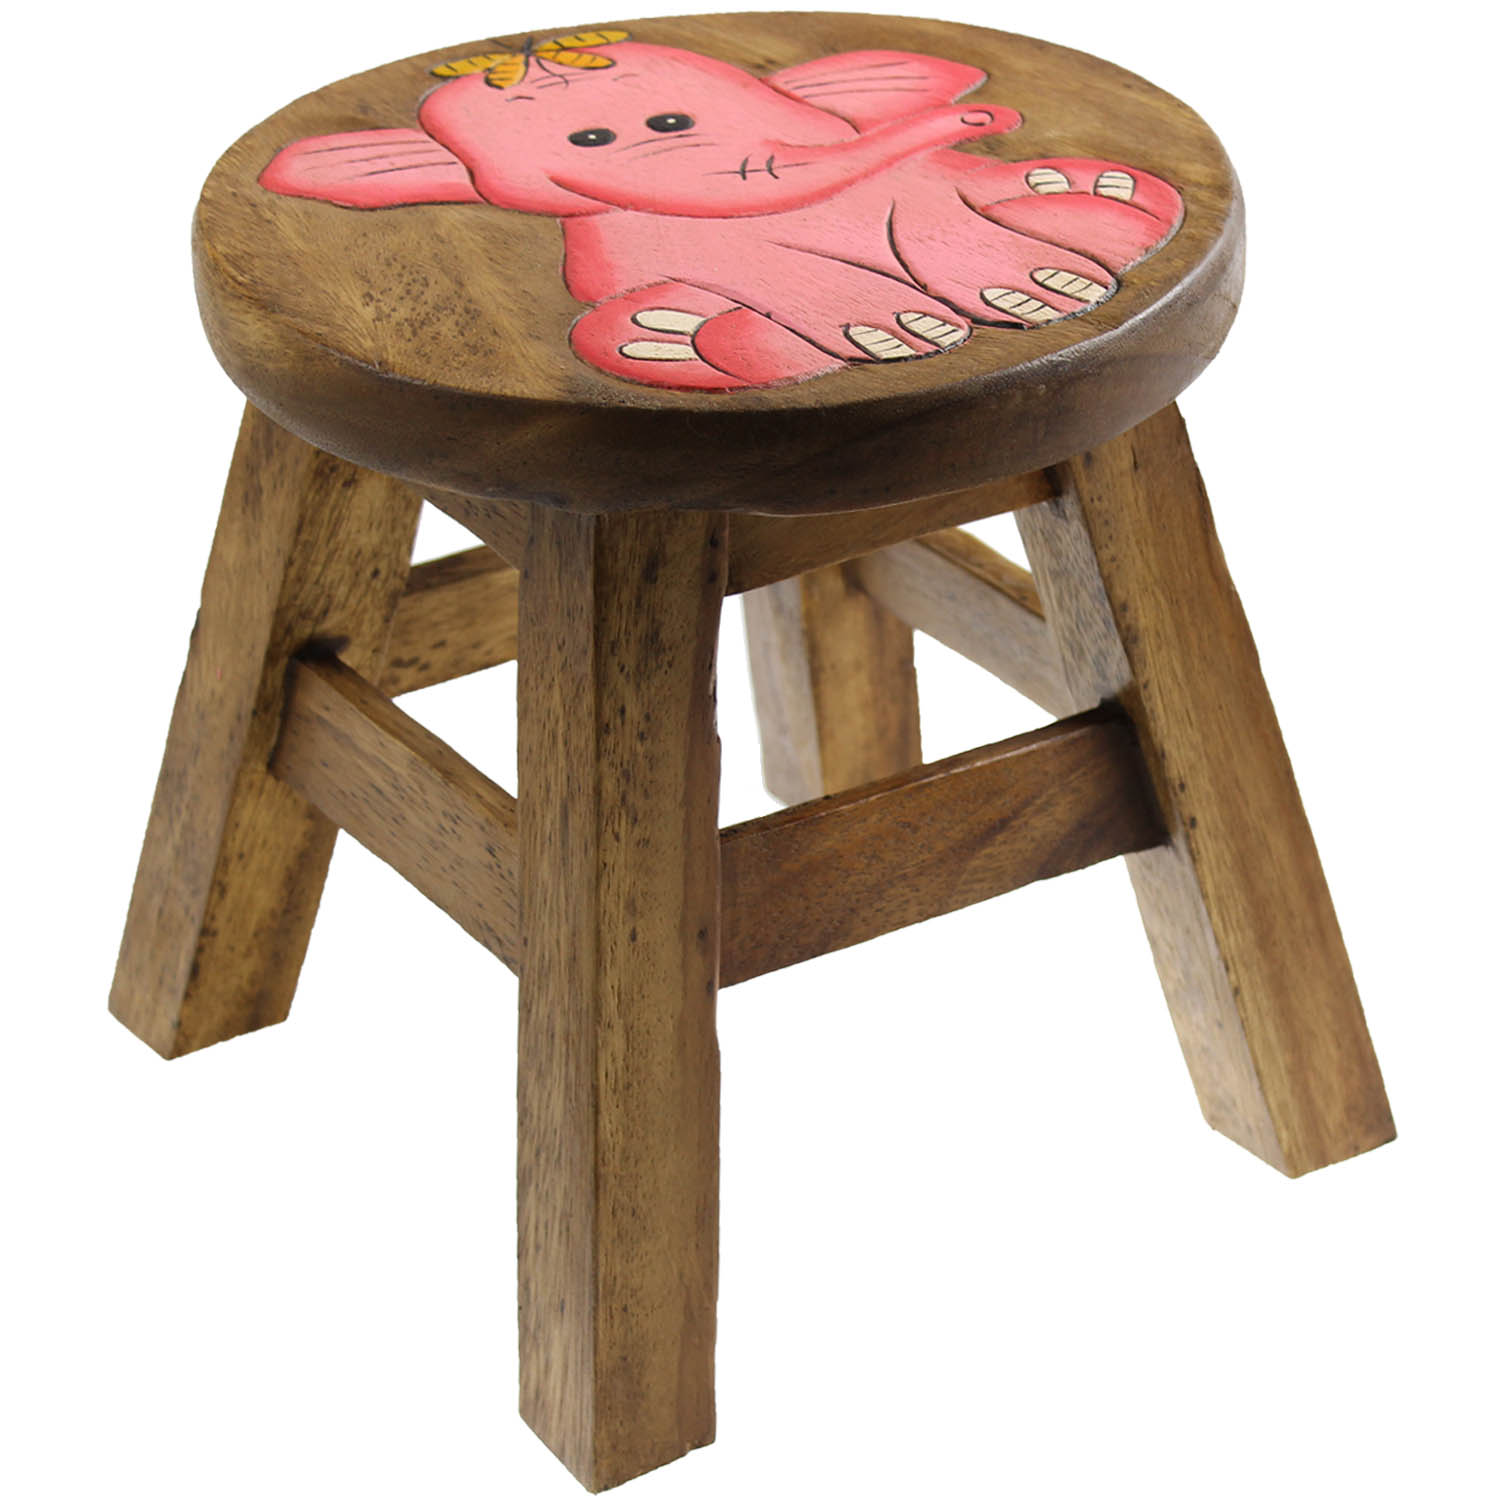 Kids Wooden Stool Solid Wood Wooden Round Elephant Design Kids Foot Stool